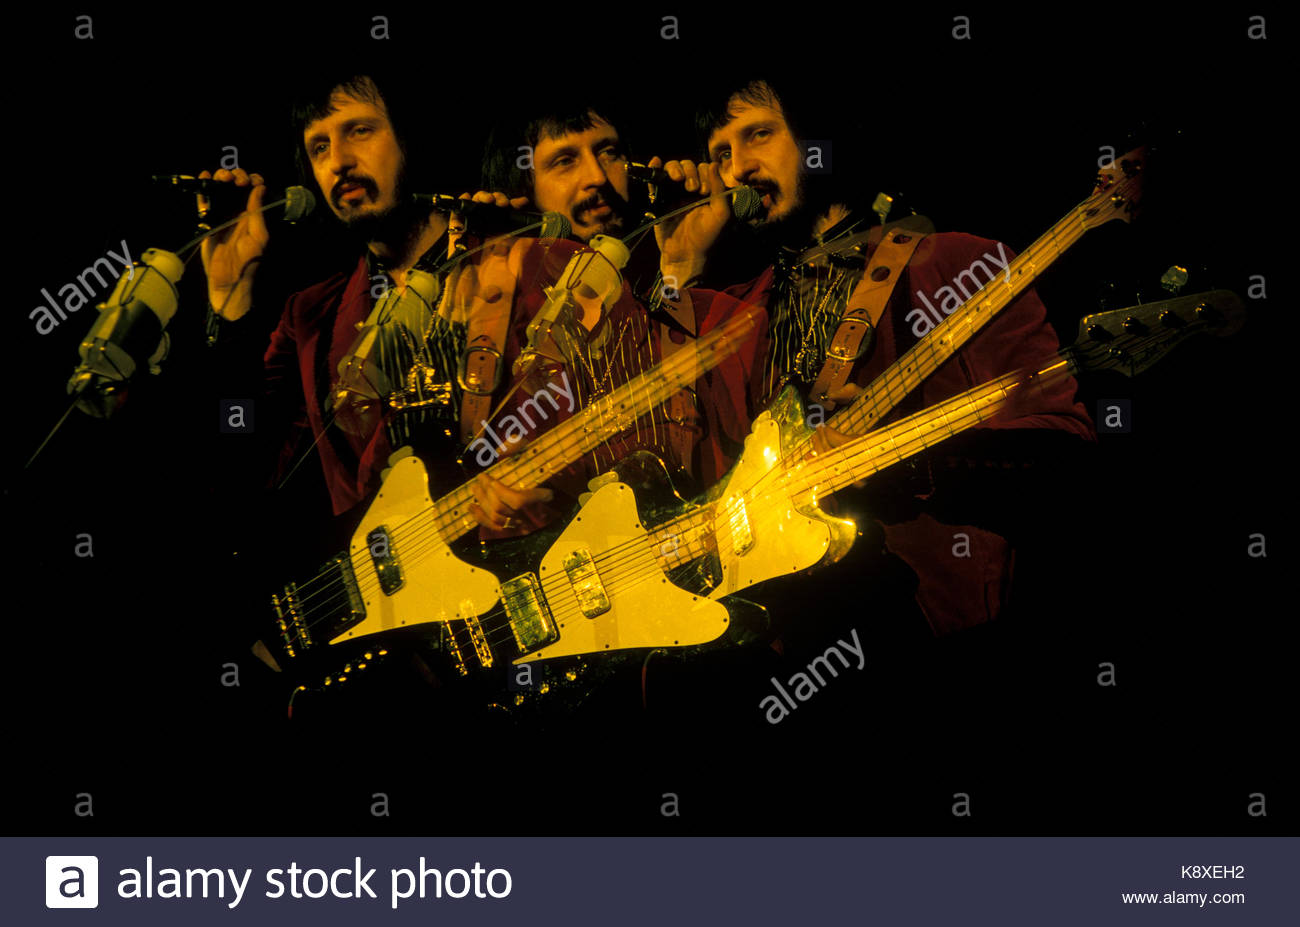 John Entwistle of the English rock band The Who performing live at ...